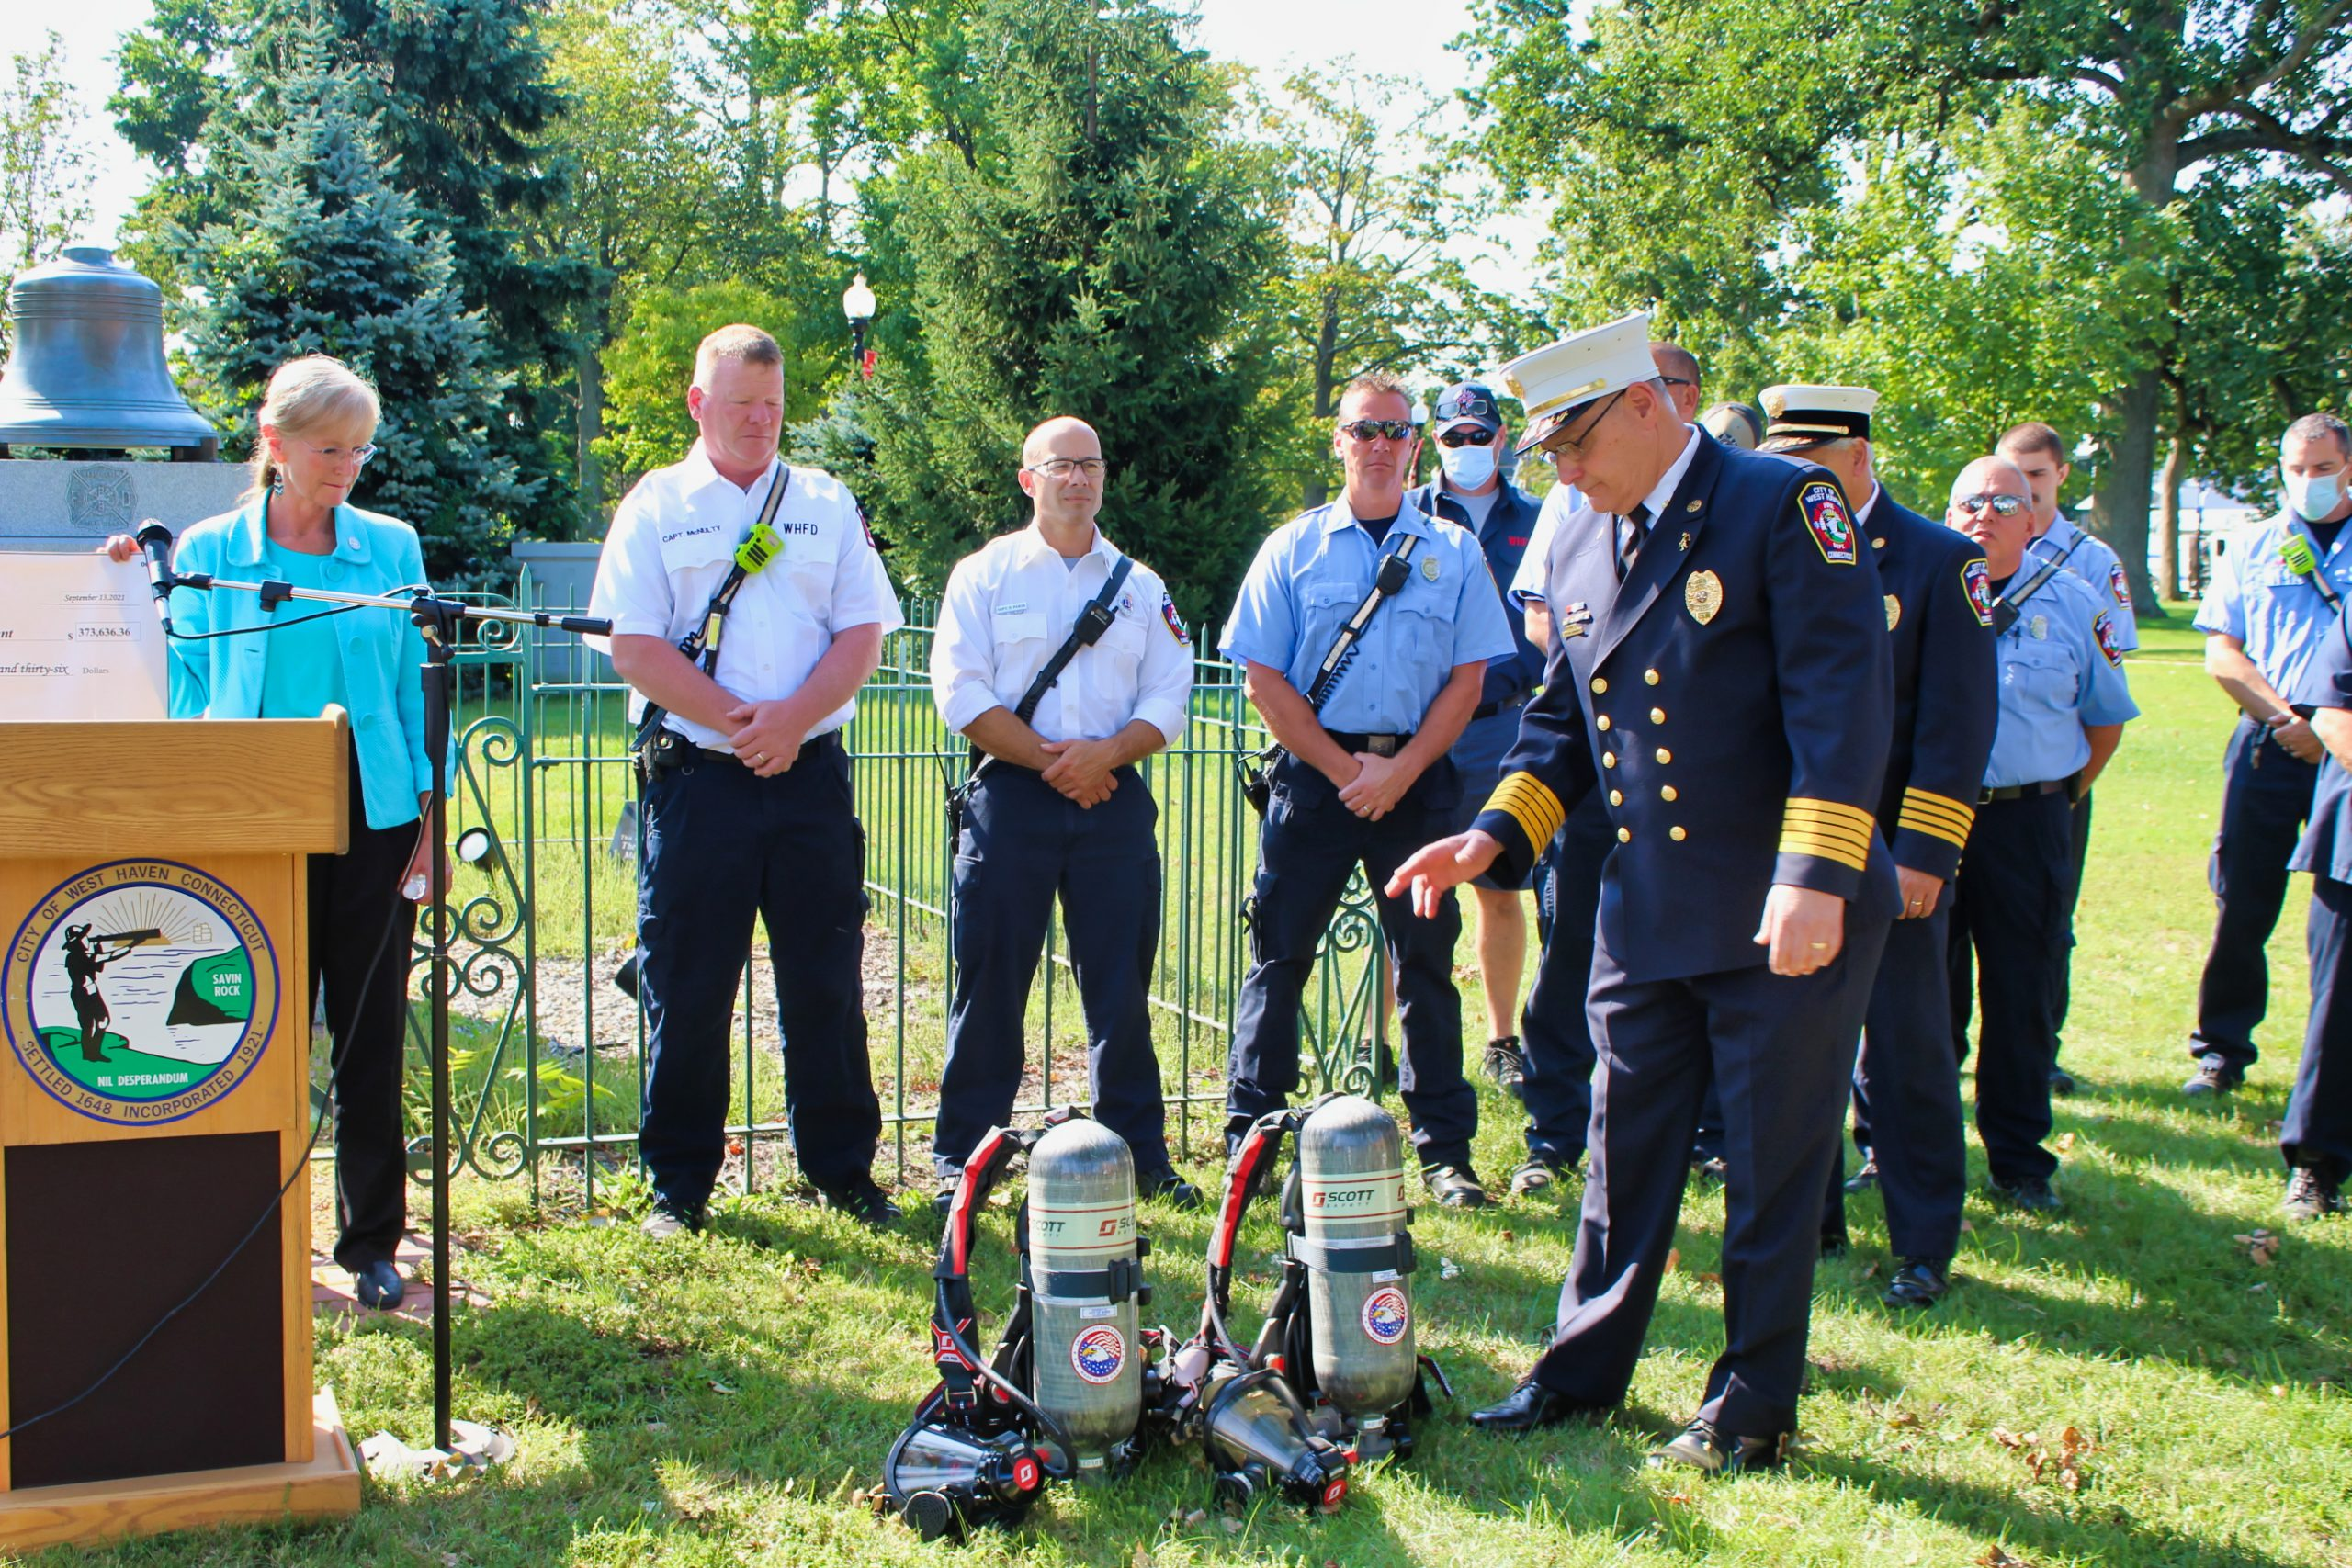 FDs get $1.23m for new equipment